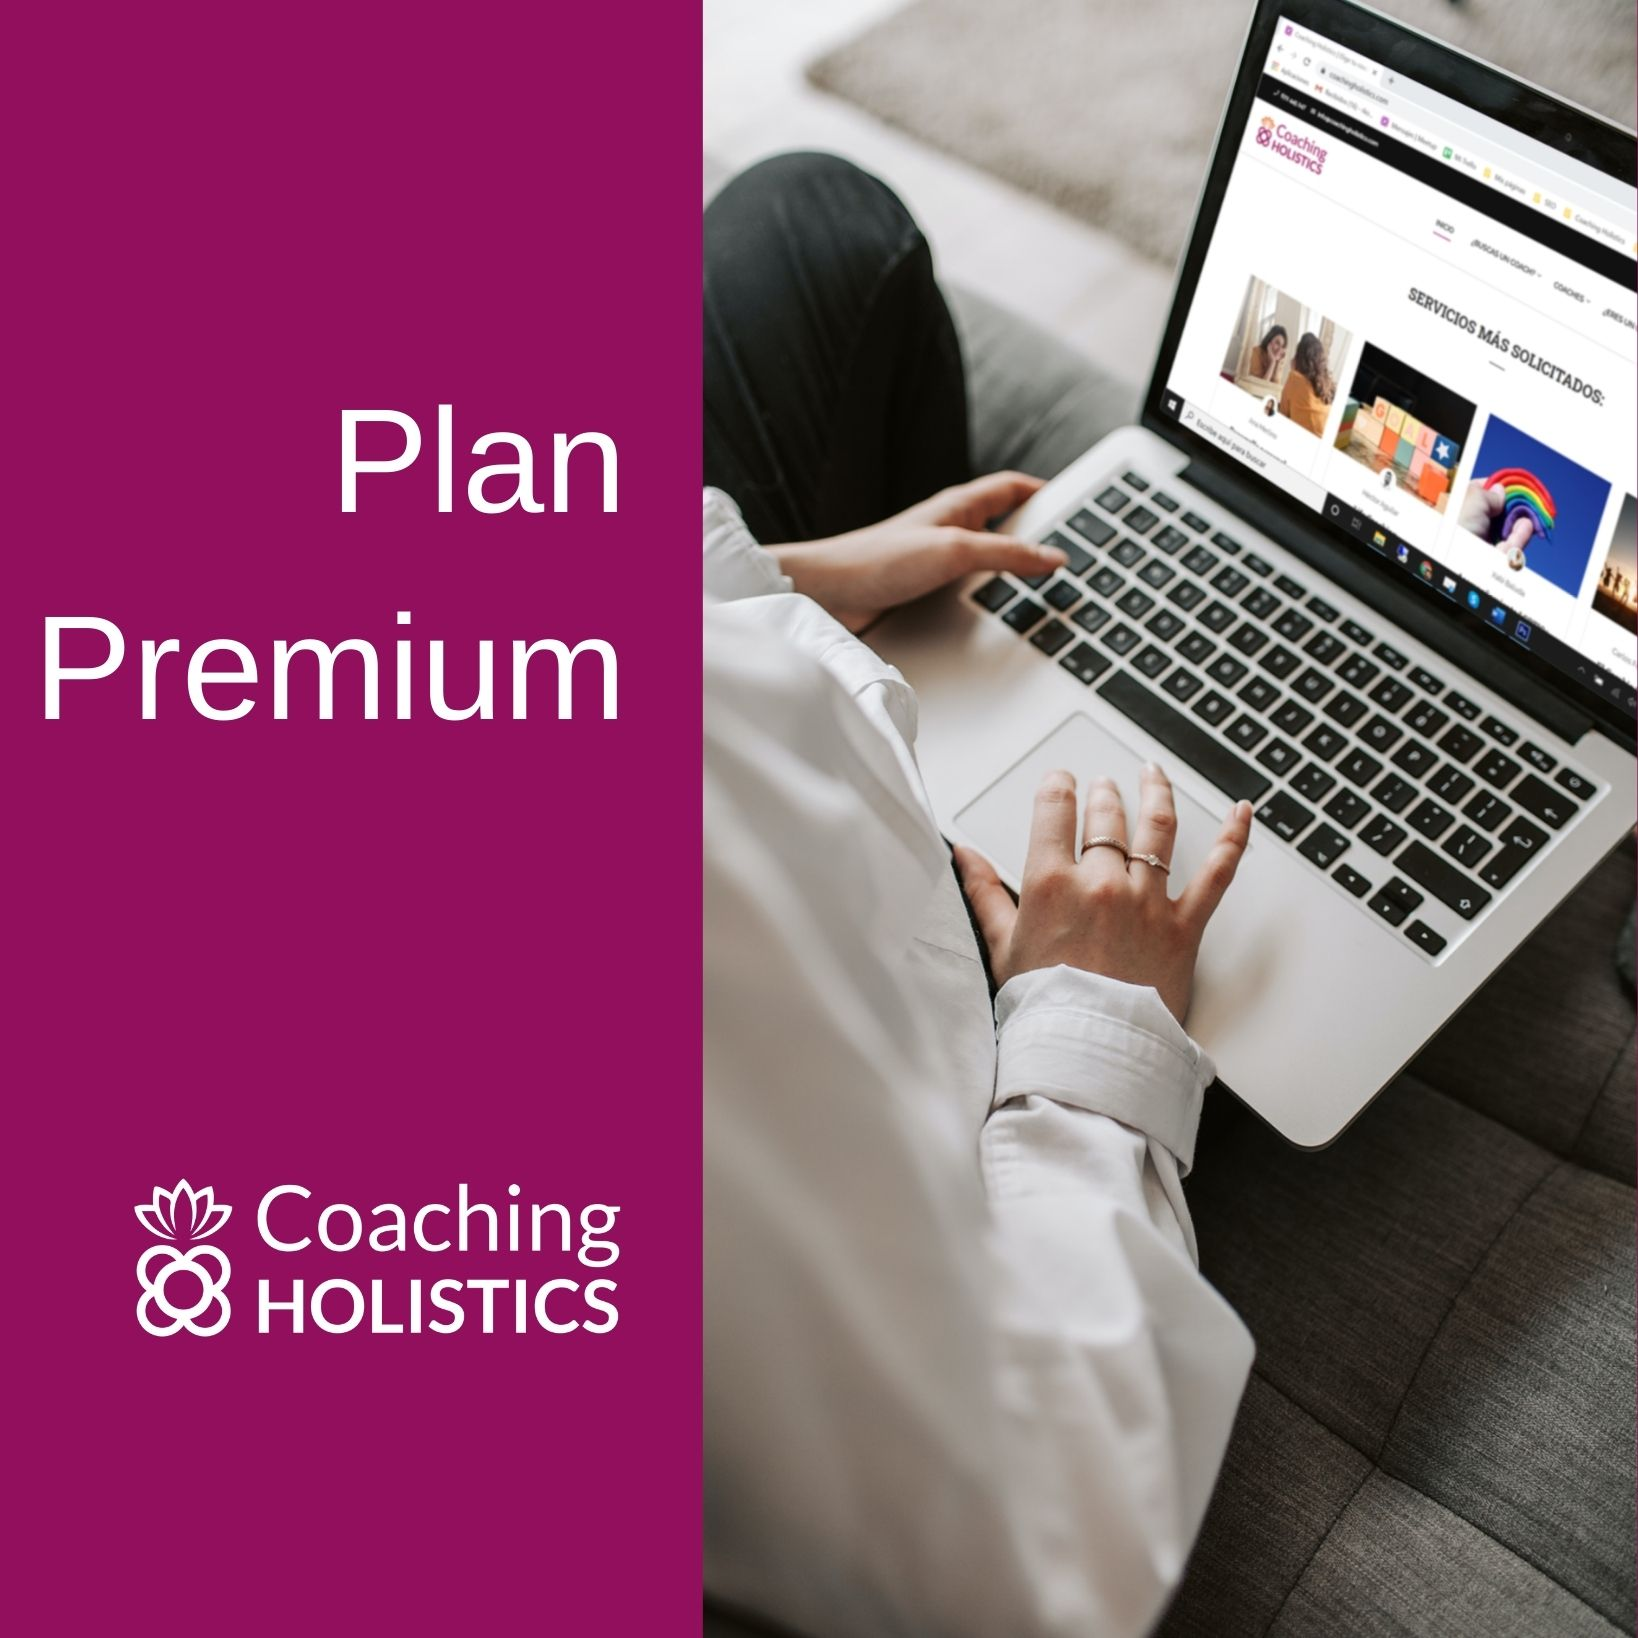 plan premium coaching holistics